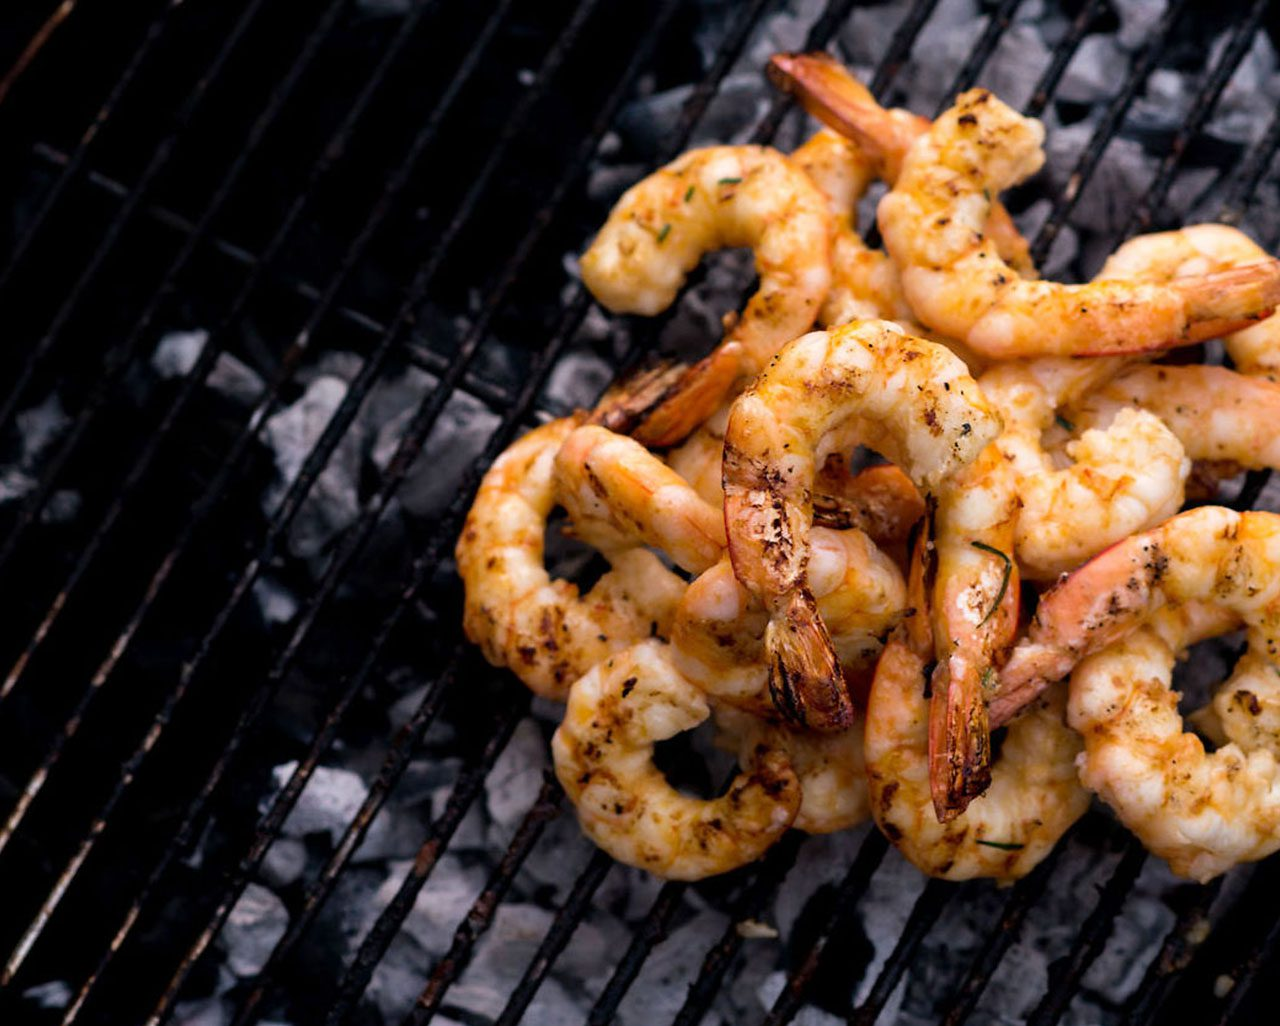 The Marke Apartments Outdoor Kitchen Grilling Shrimp